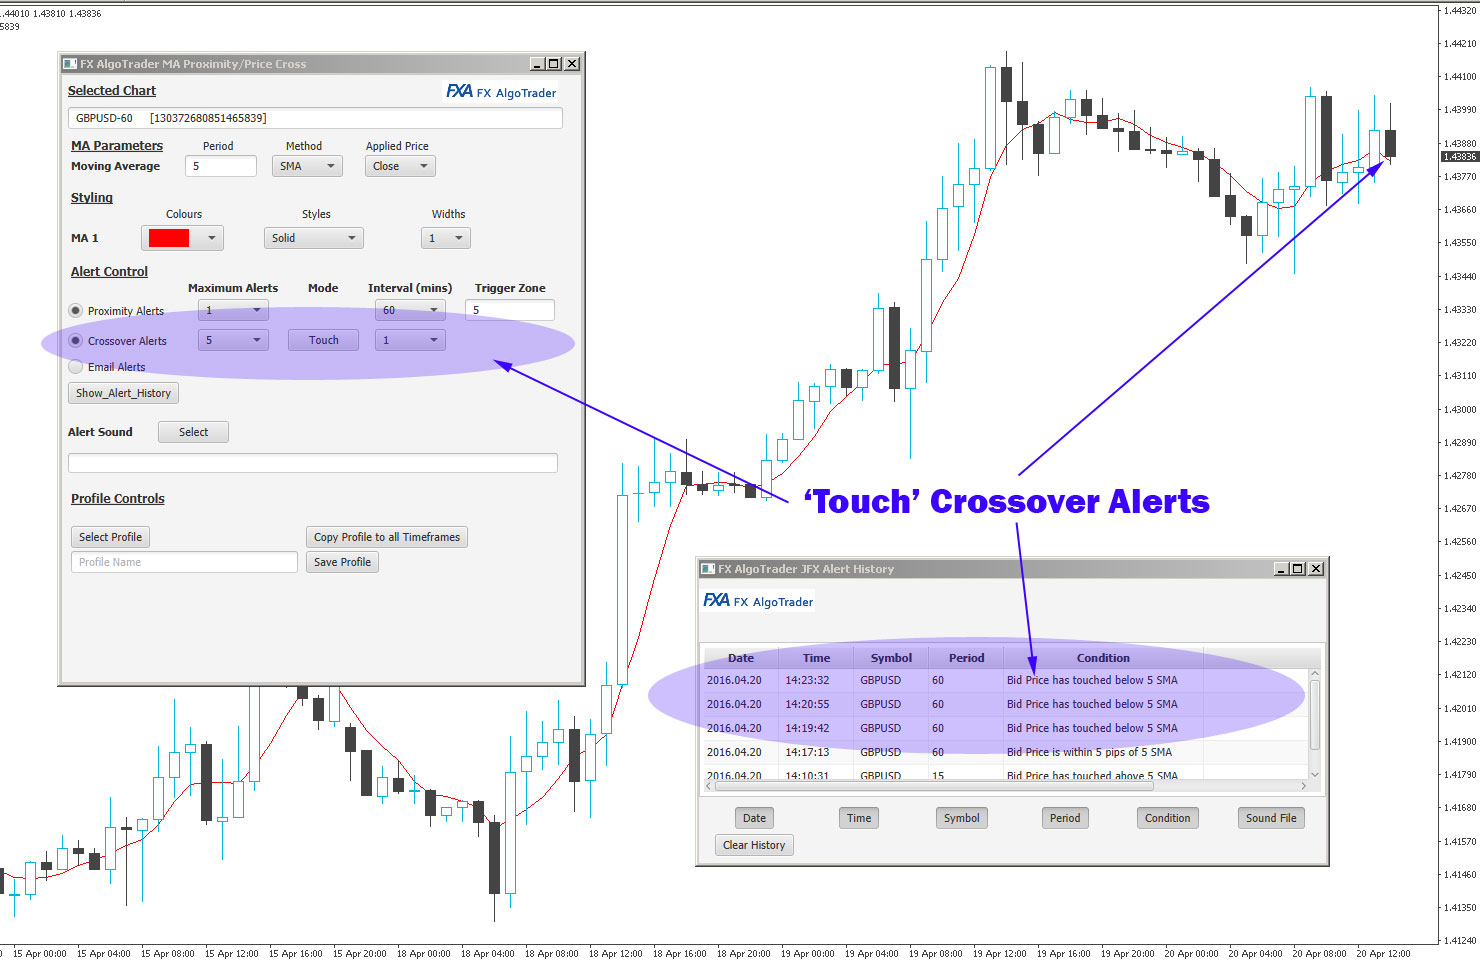 Moving Average Potential Crossover Alerts